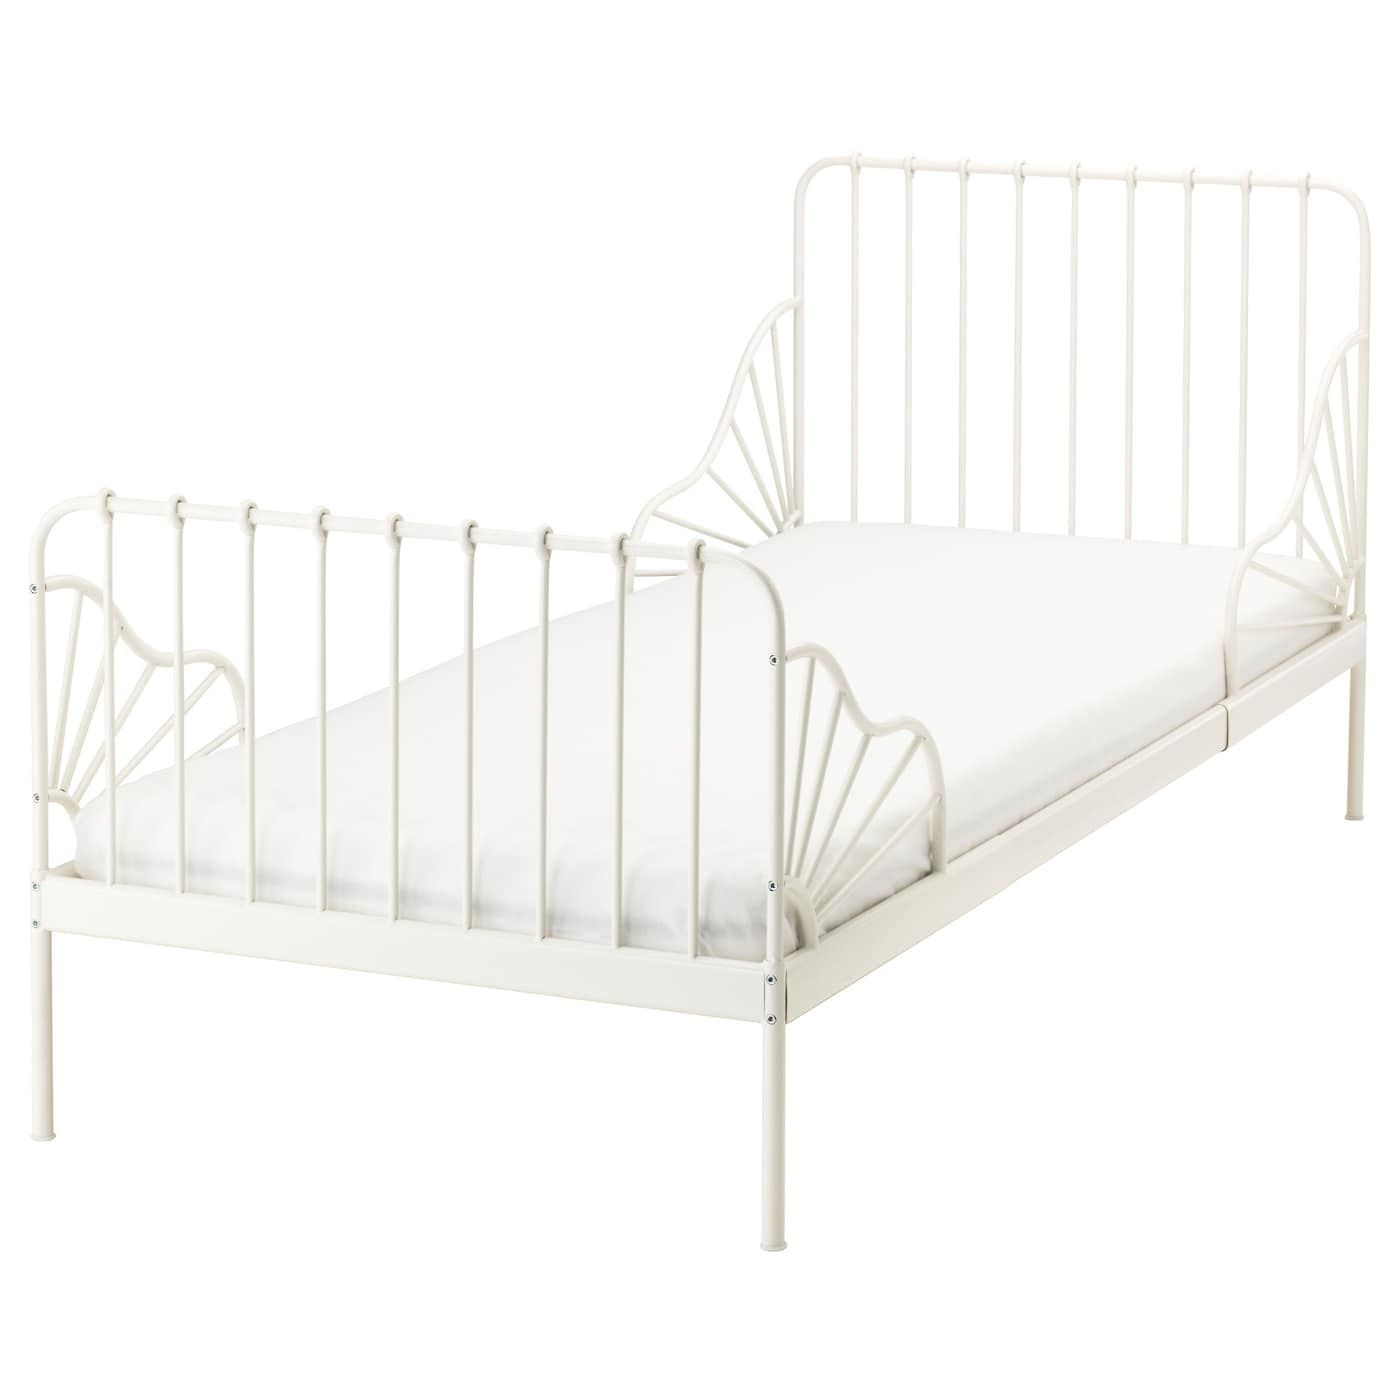 Minnen Ext Bed Frame With Slatted Bed Base White 38 1 4x74 3 4